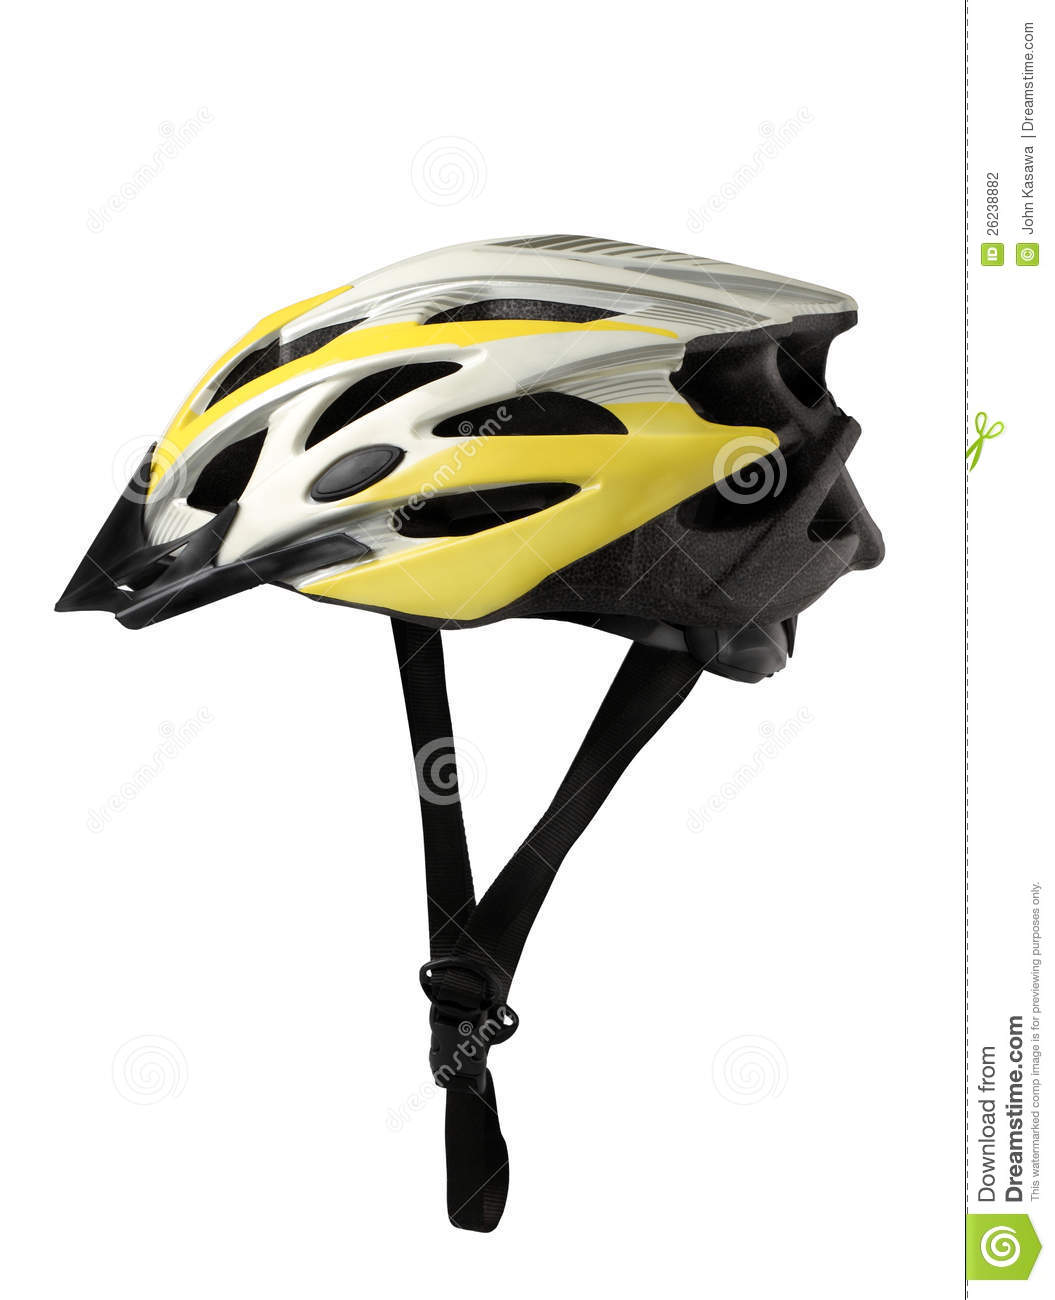 Bicycle Safety Helmet Stock Photo Image Of Sportswear